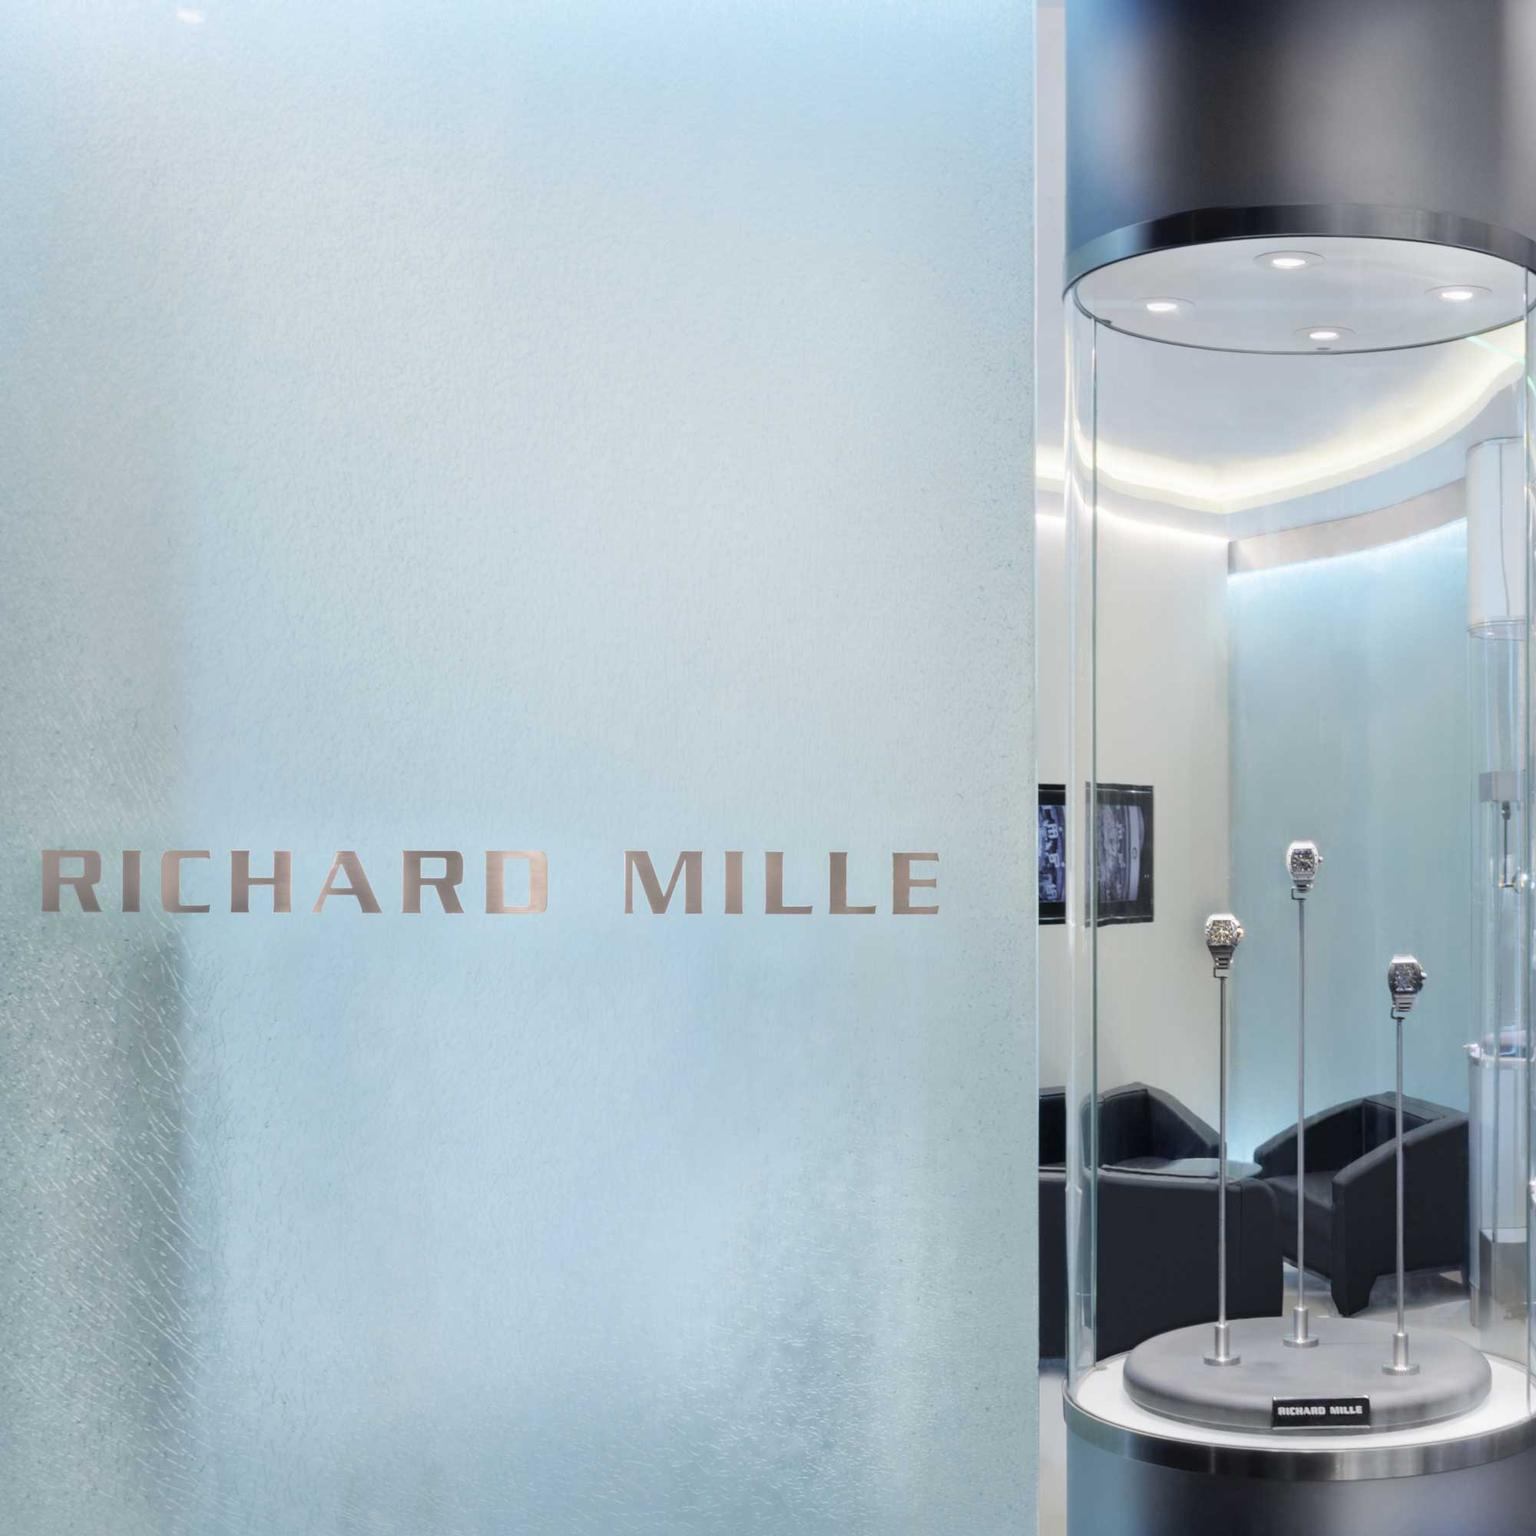 Richard Mille boutique at Harrods in London